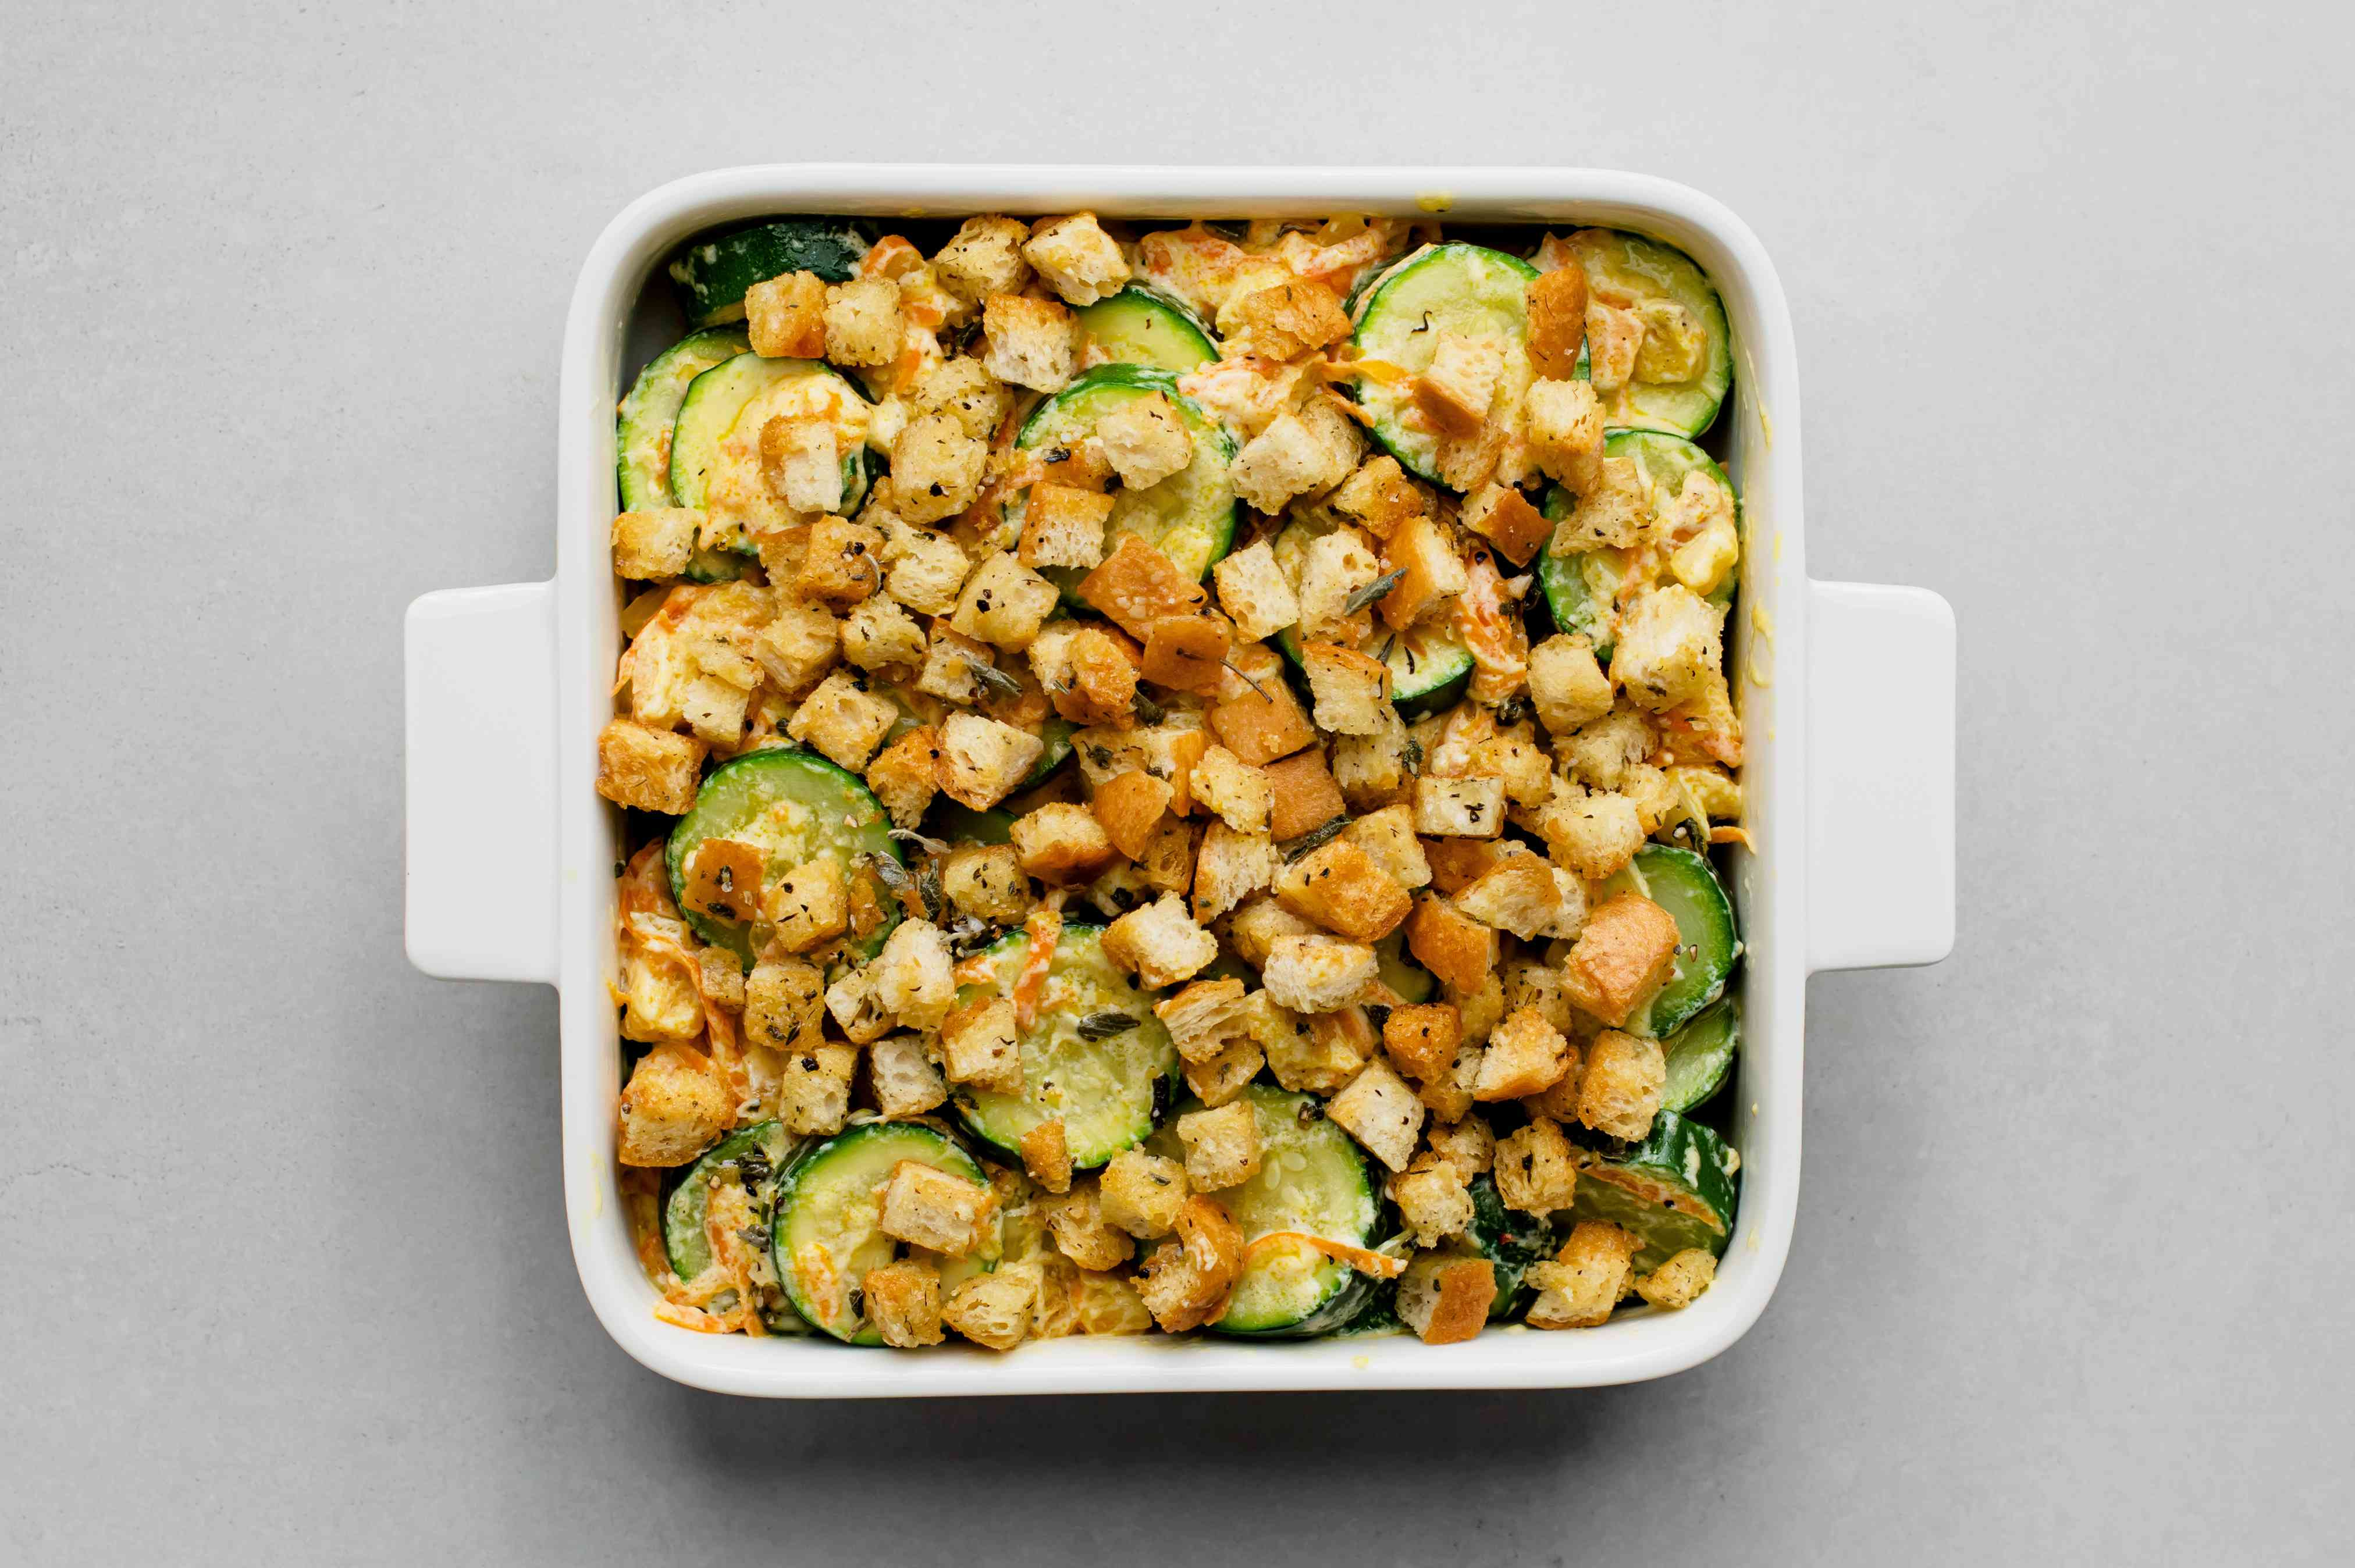 stuffing cubes on top of the zucchini and stuffing mixture